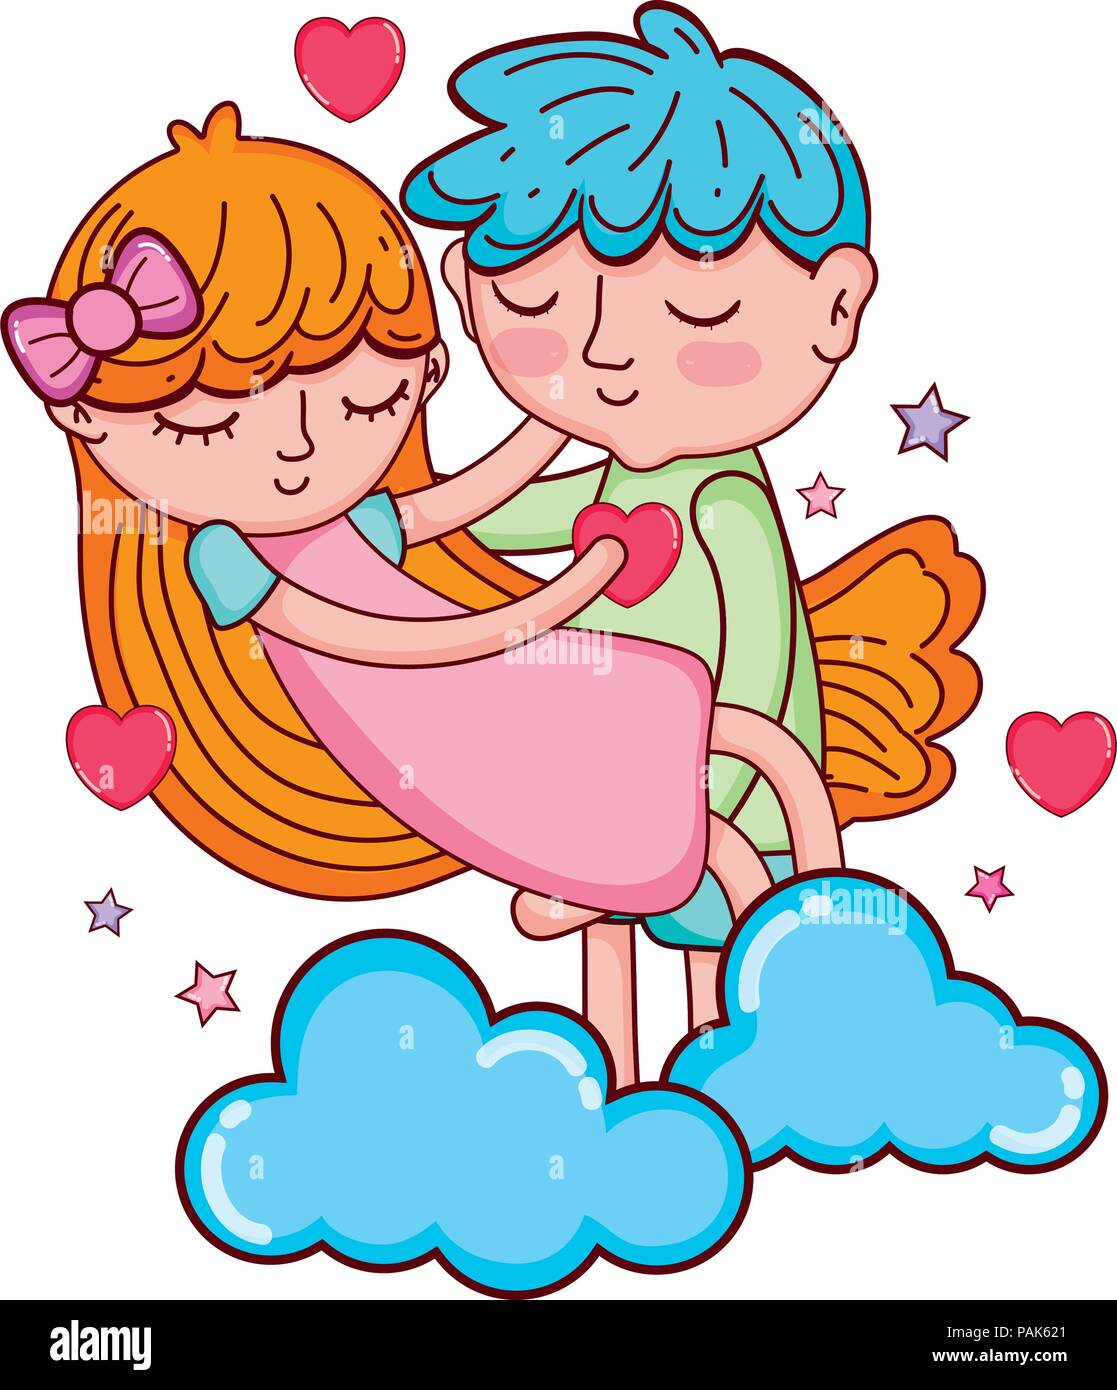 Boy And Girl Sleeping With Hearts And Clouds Stock Vector Art